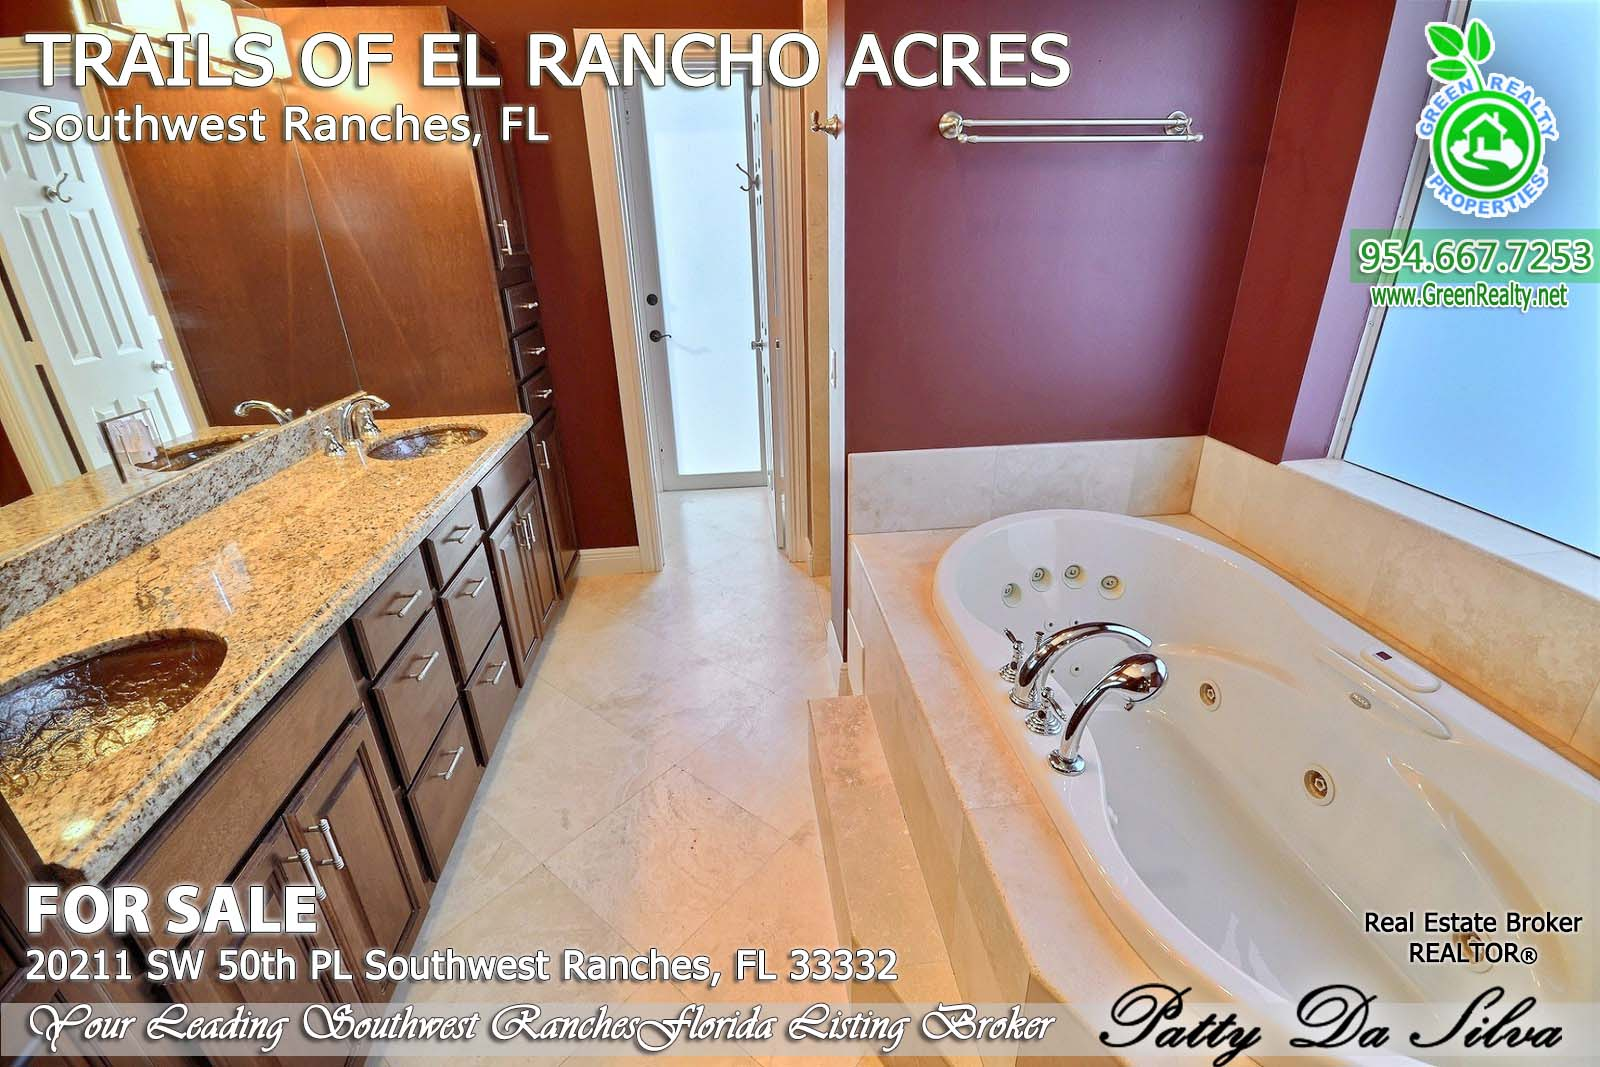 20211 SW 50th PL, Southwest Ranches, FL 33332 (63)